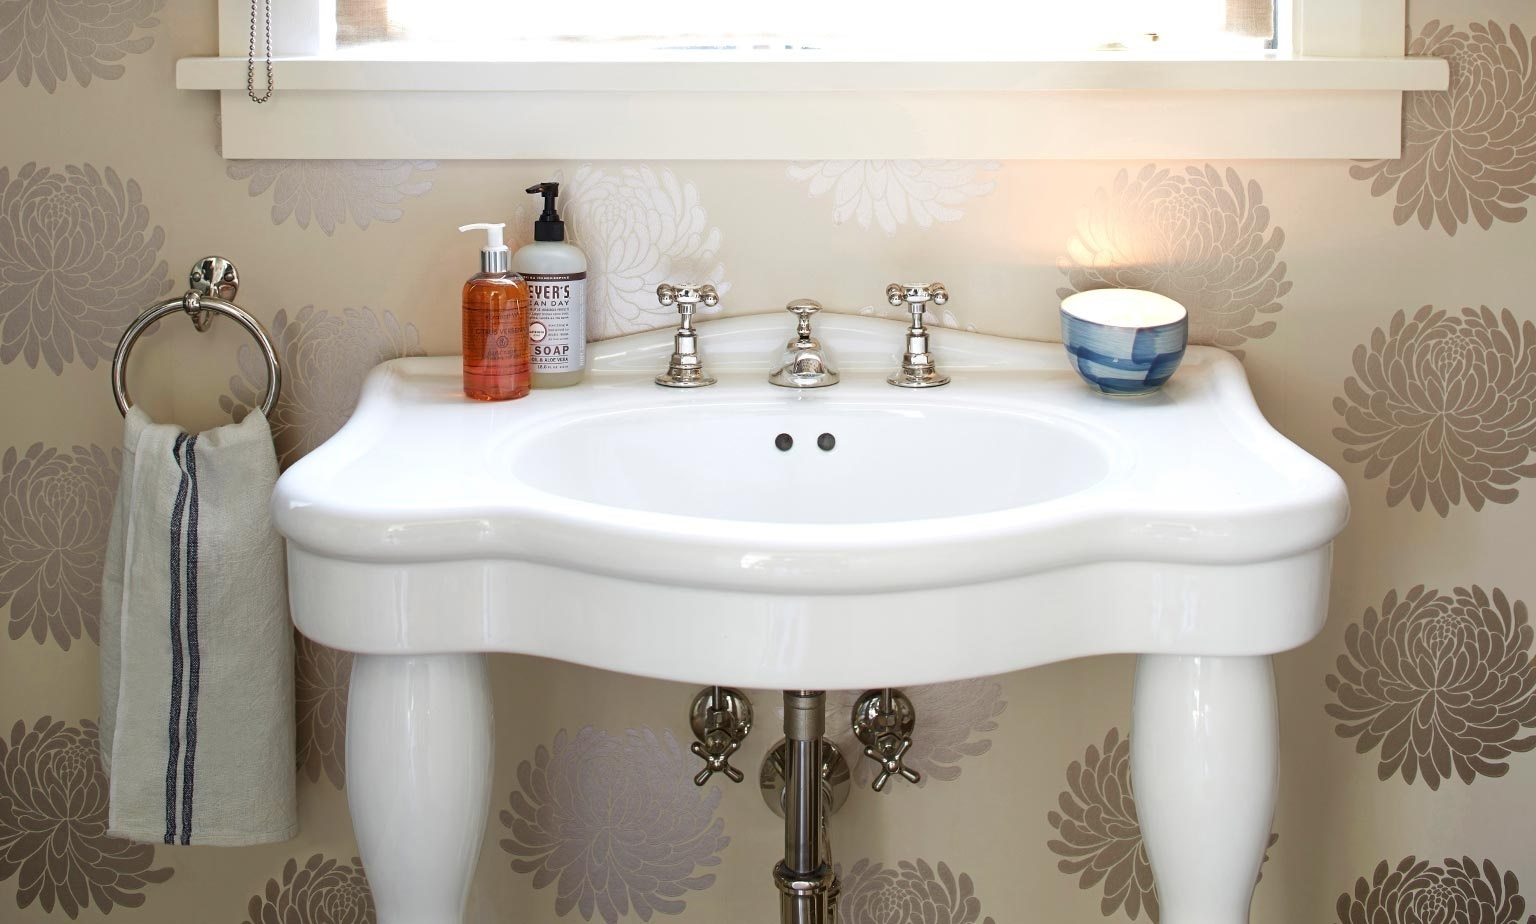 DIY Kitchens and Bathrooms